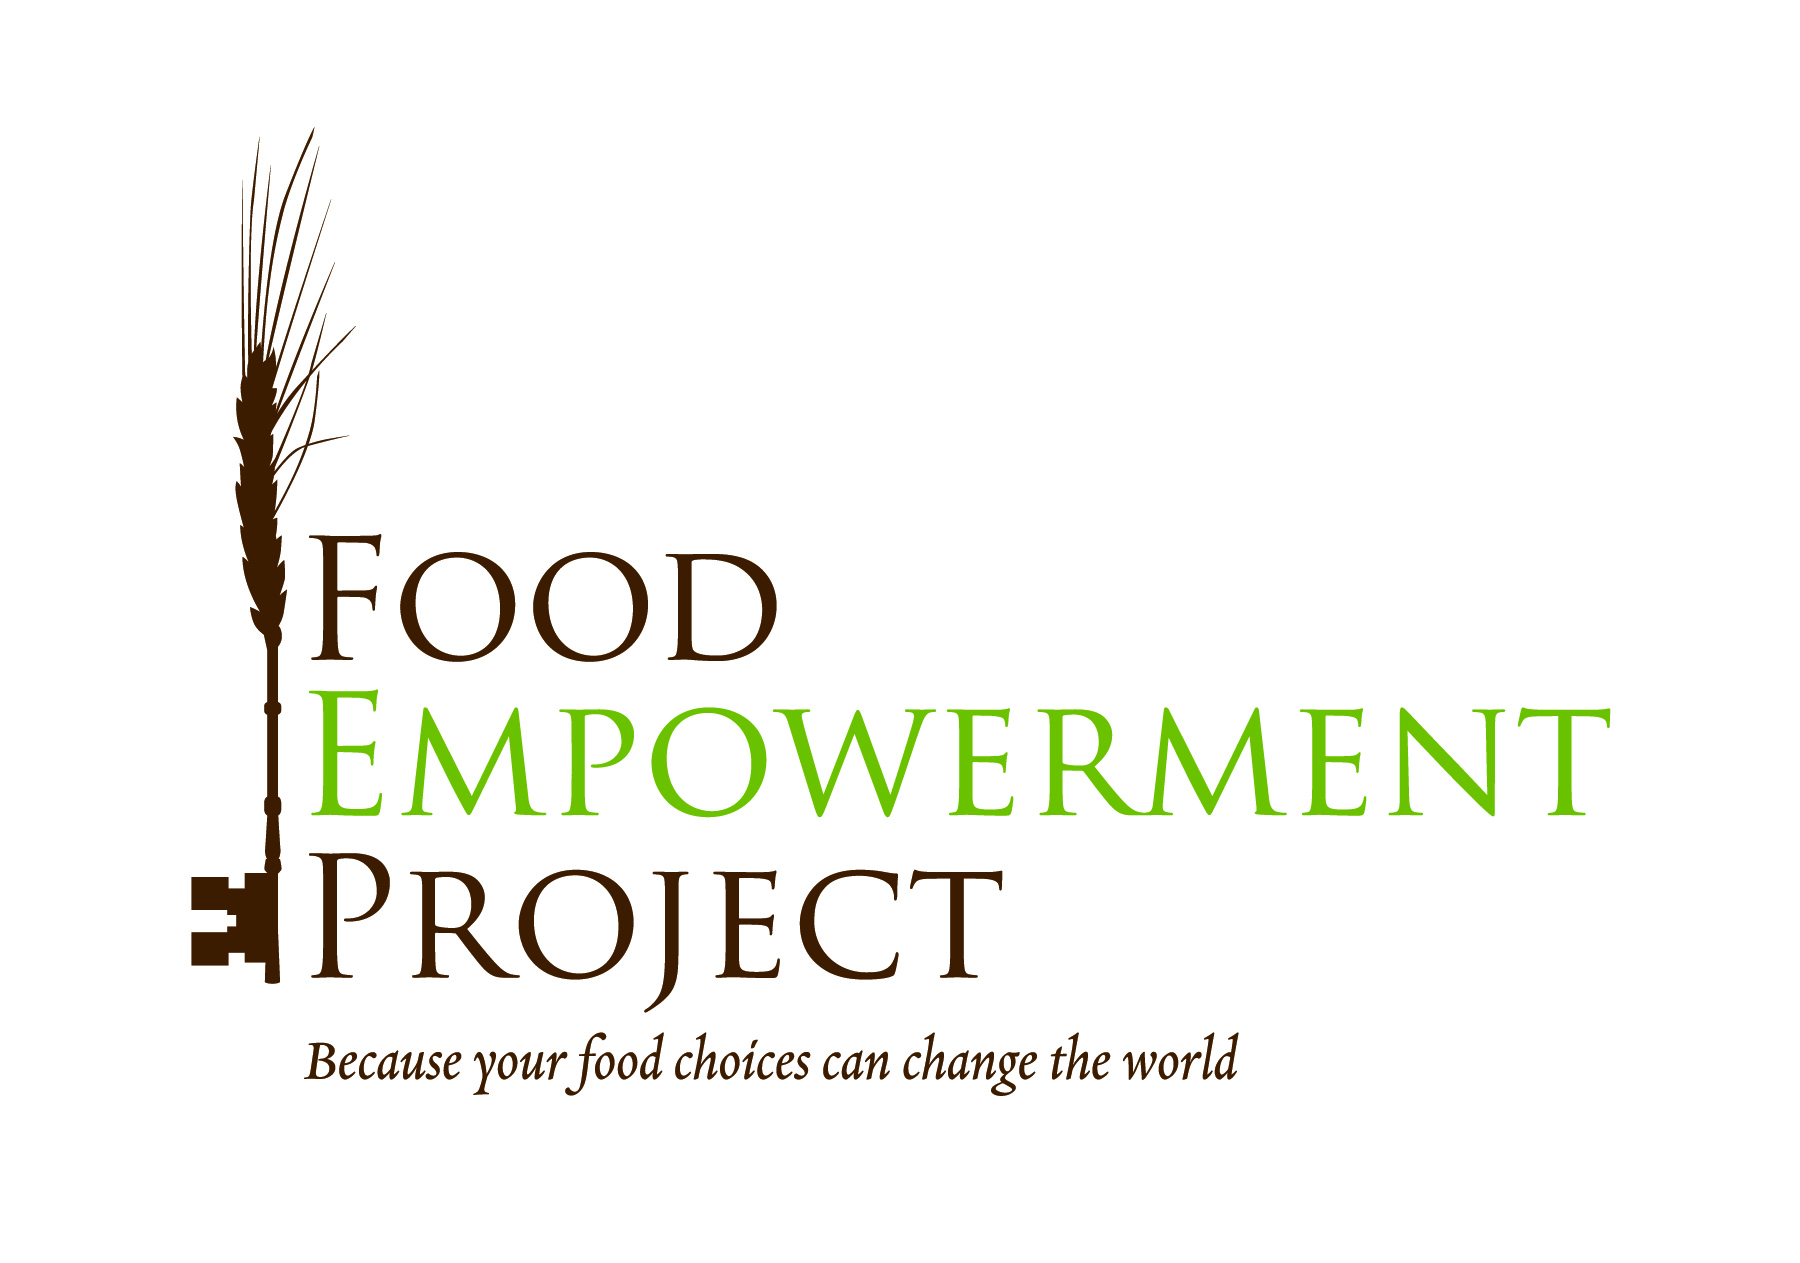 Food Empowerment Project